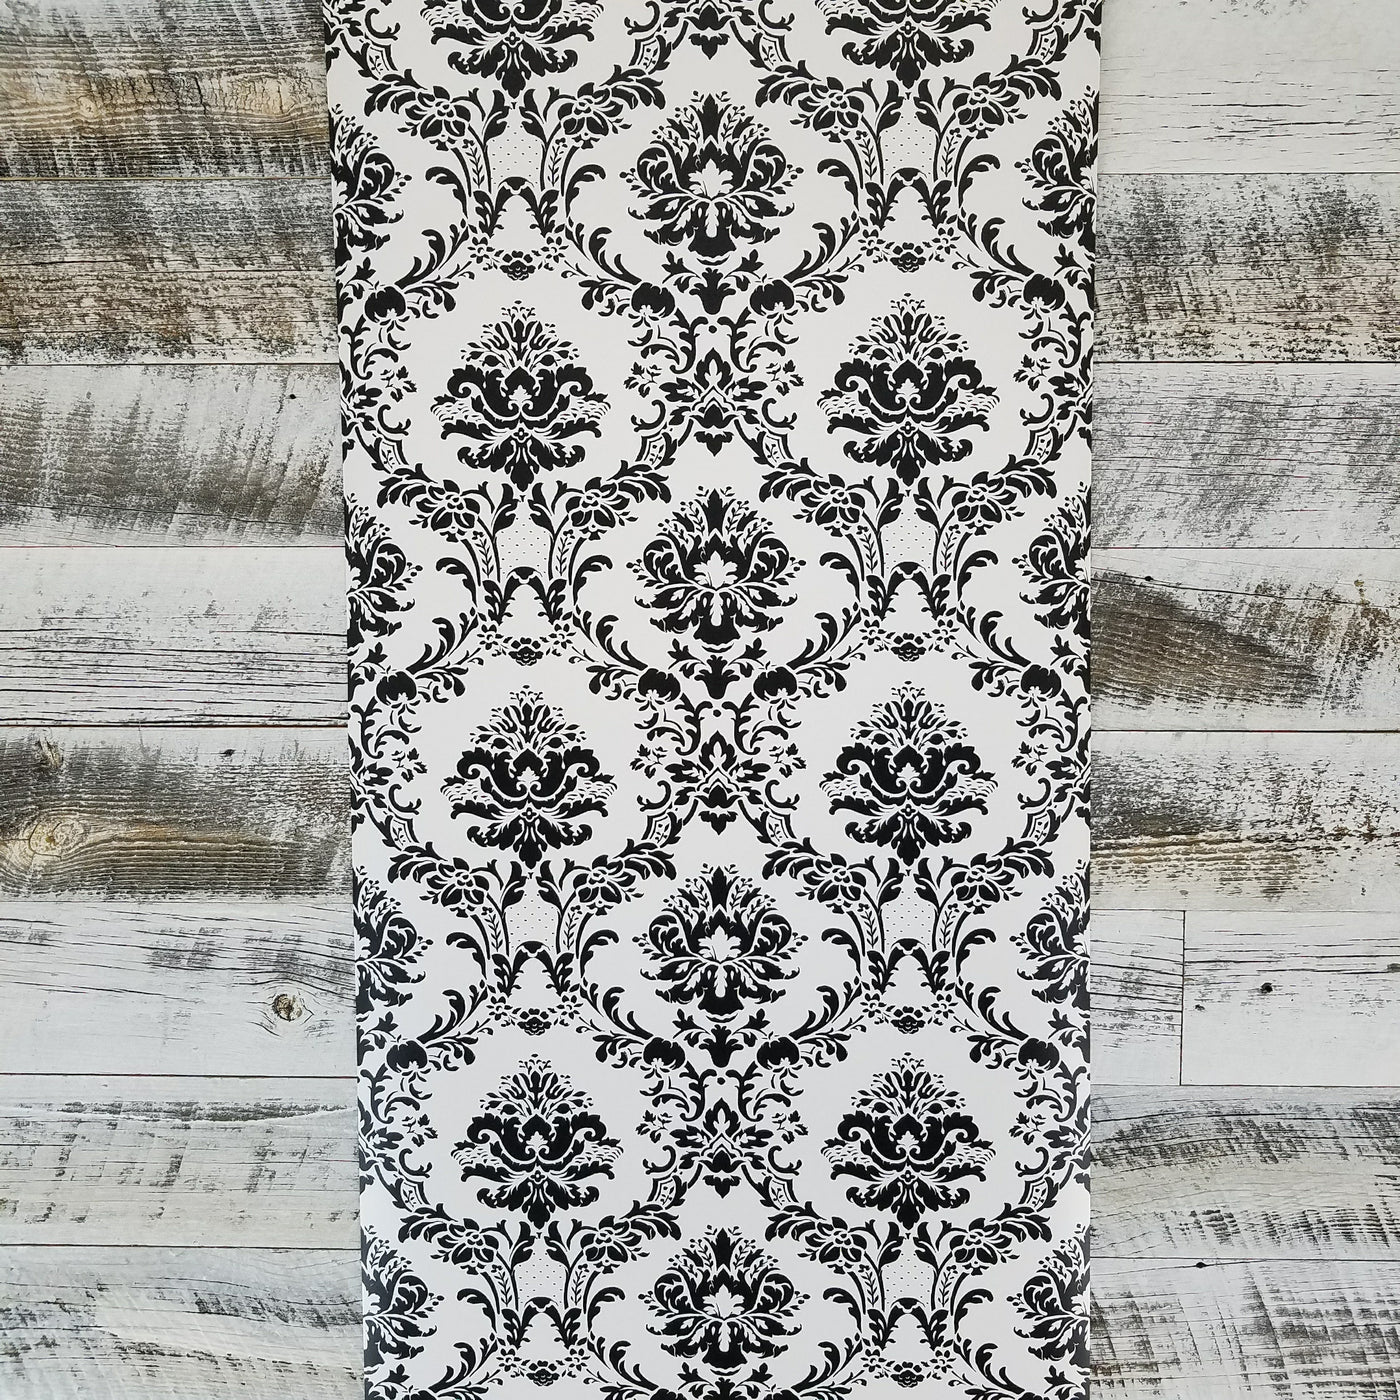 Black And White Victorian Damask Wallpaper Bk32013 D Marie Interiors